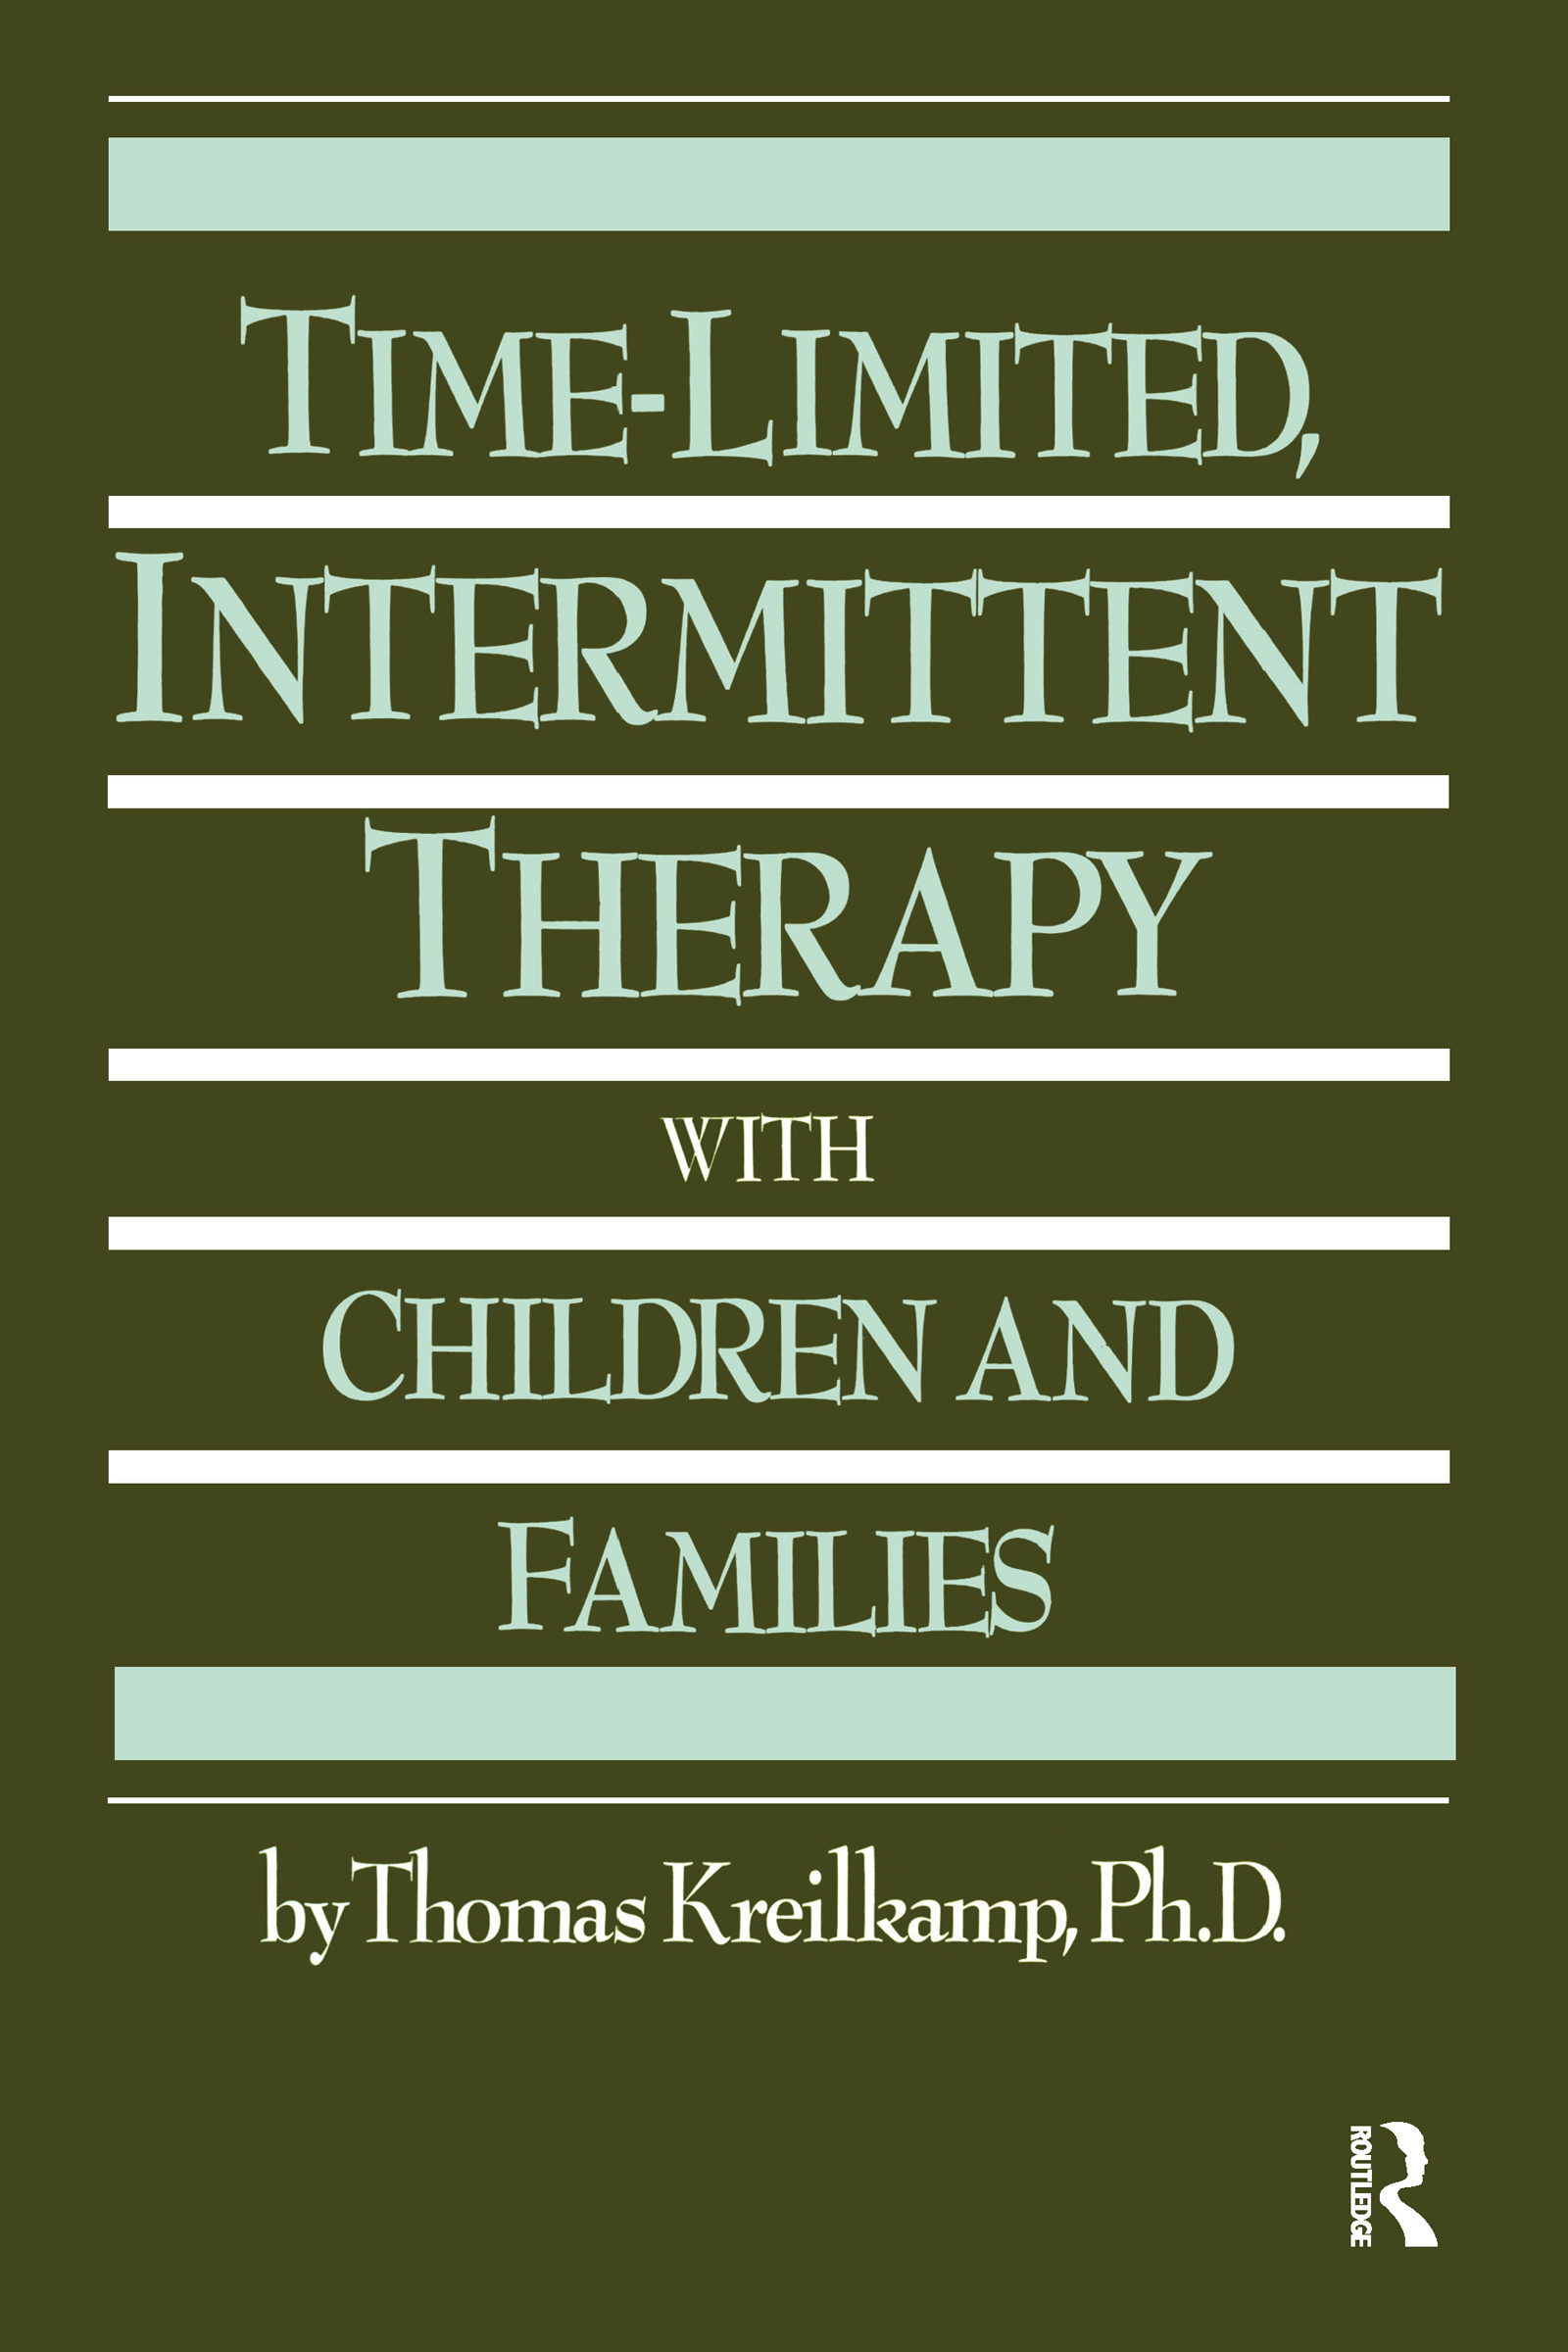 Time-Limited, Intermittent Therapy With Children And Families book cover